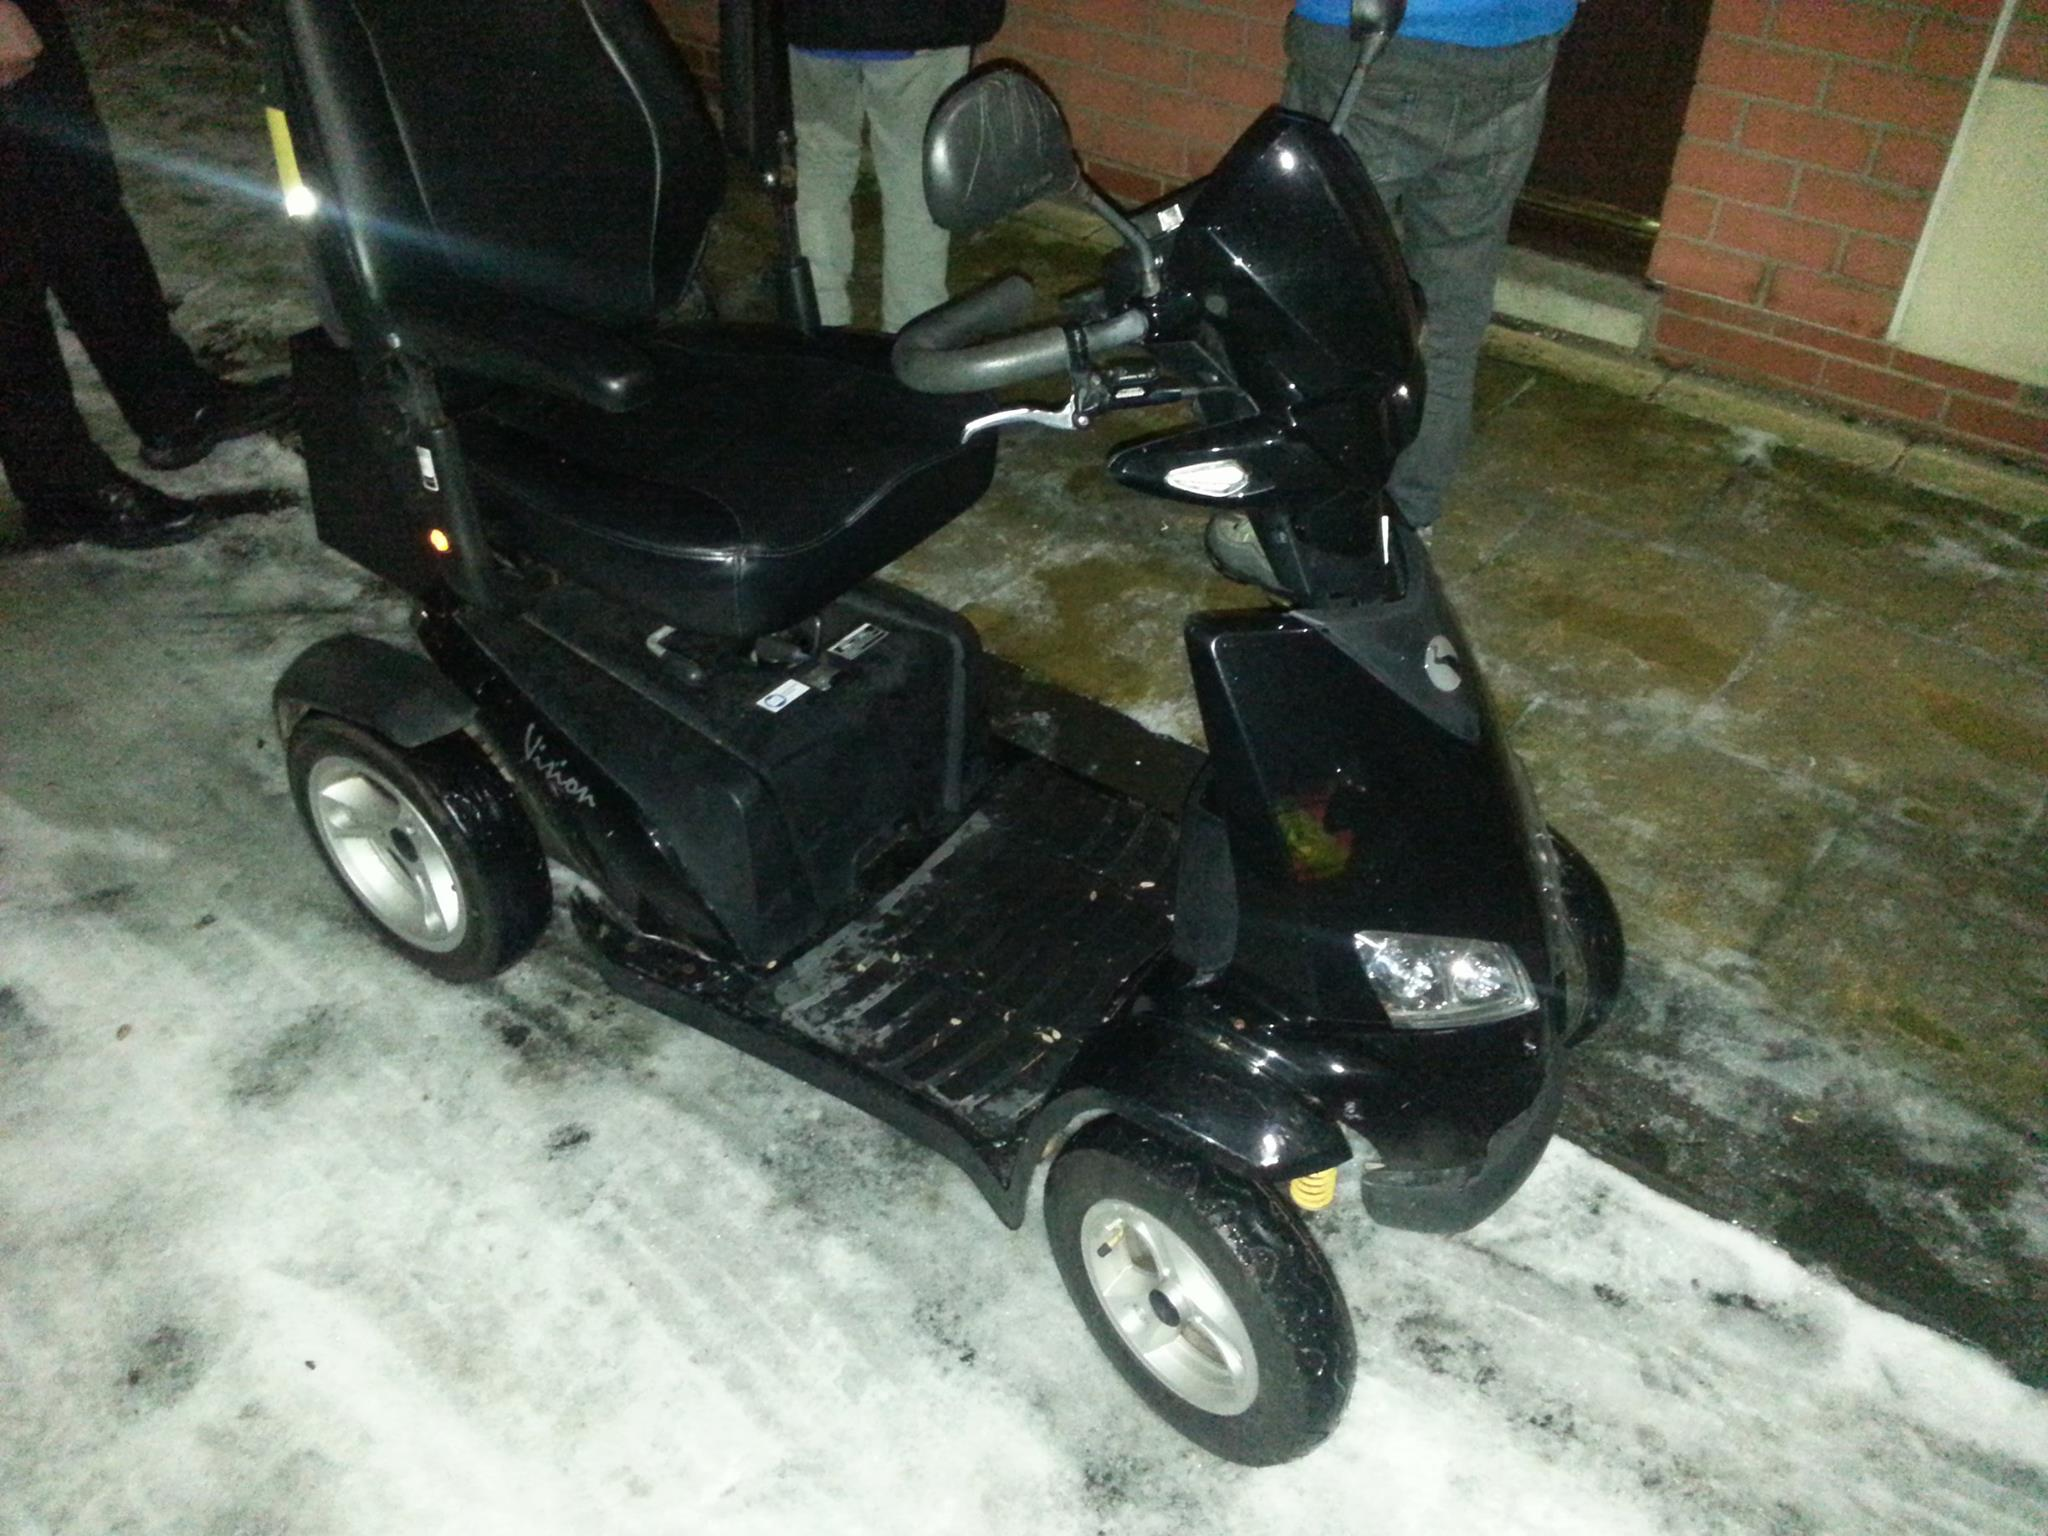 STOLEN: Drunken woman arrested after stealing mobility scooter in Hartlepool